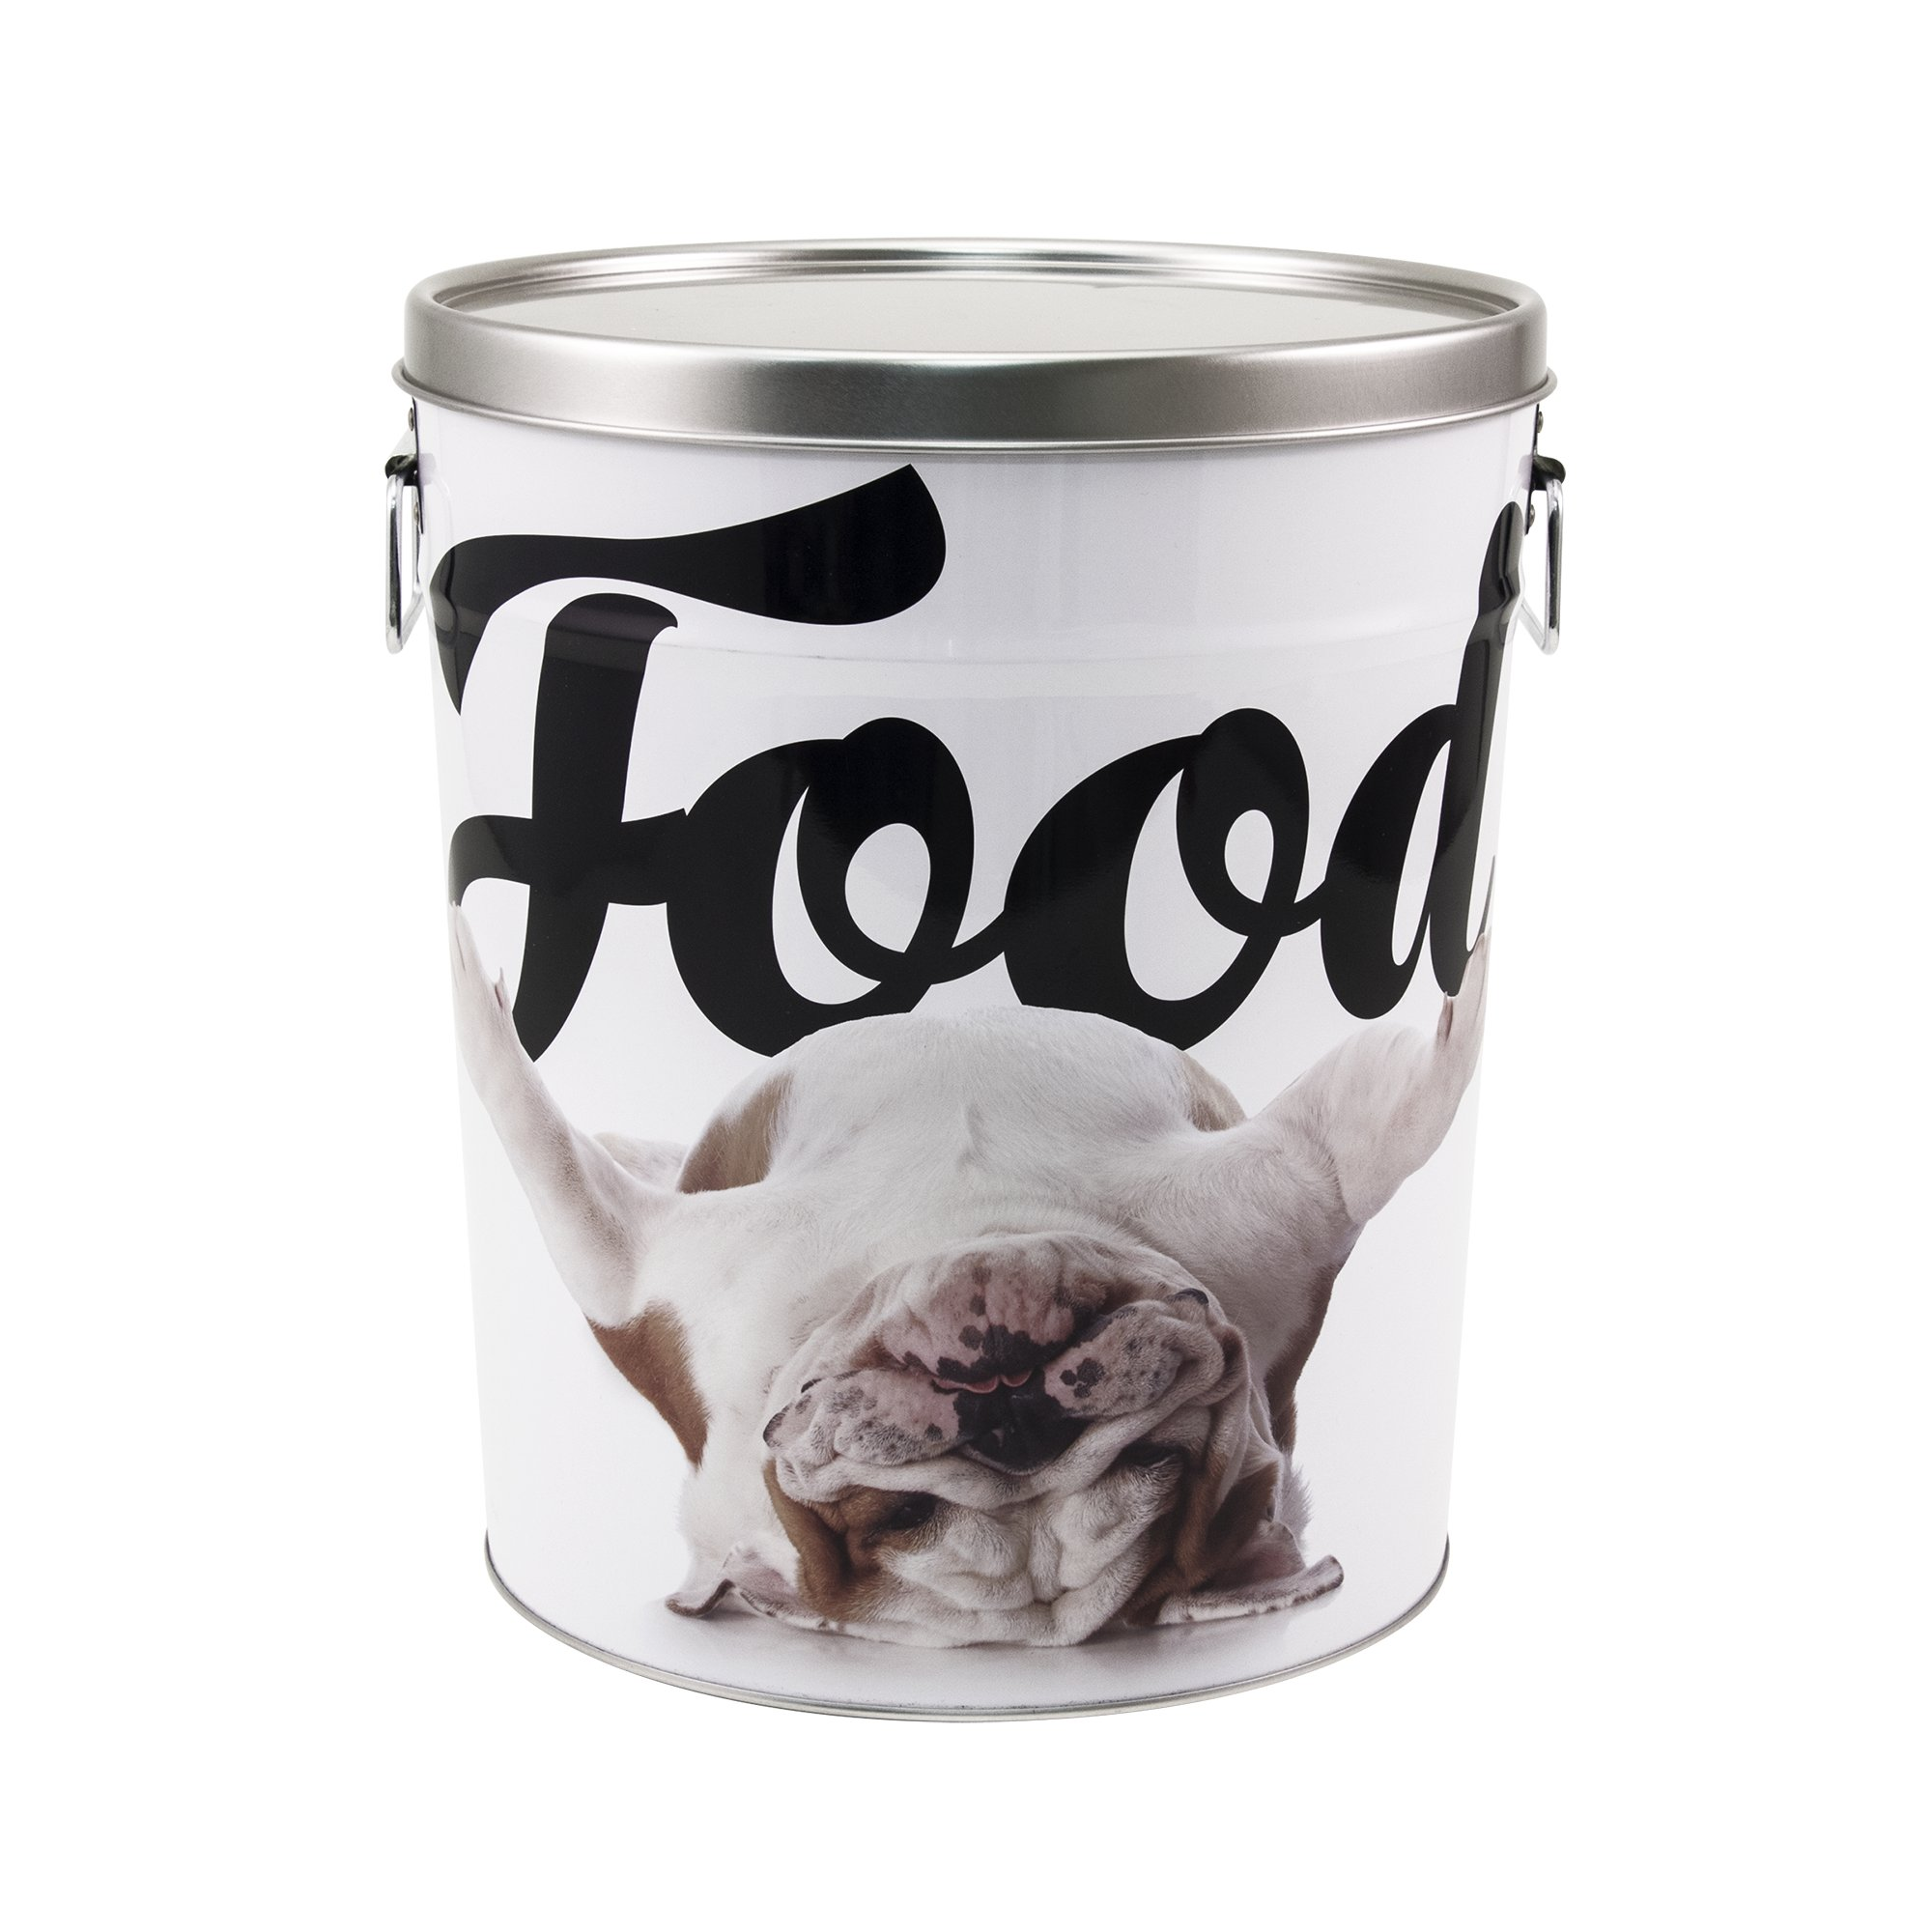 Paw Prints Tin Food Bin Bulldog 15 Lbs Capacity Small White